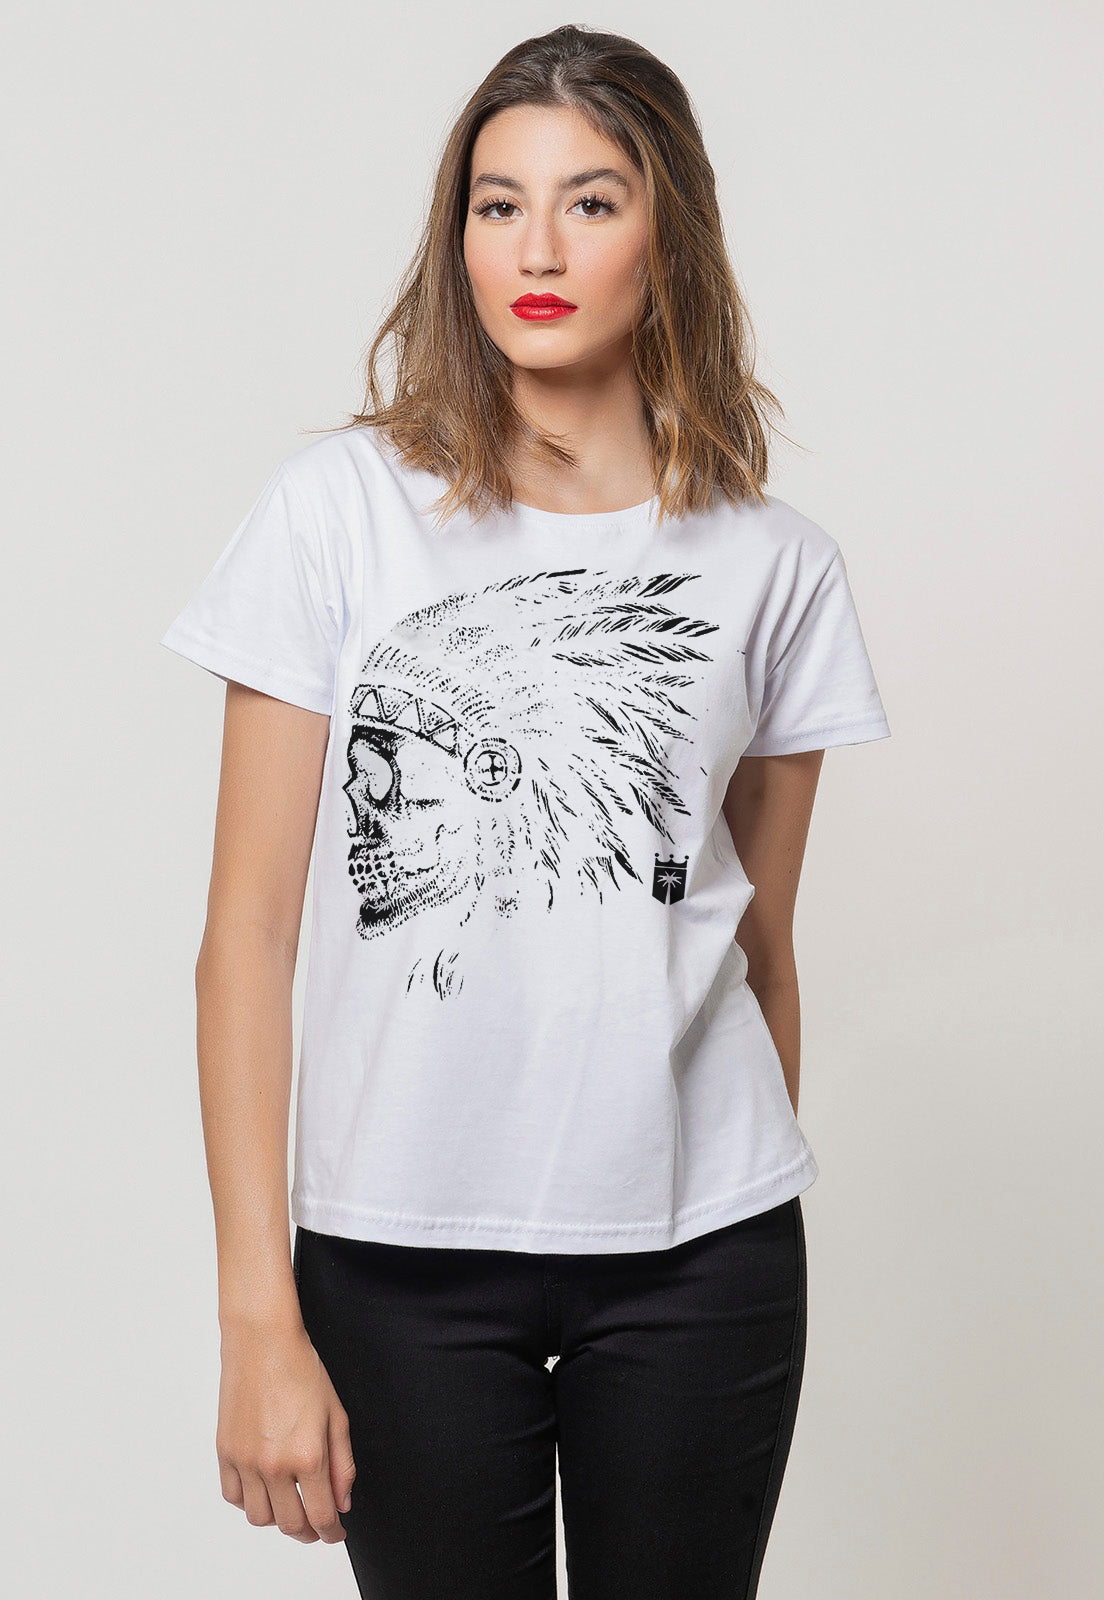 CAMISETA FEMININA BÁSICA ESTAMPADA JOSS - NATIVE